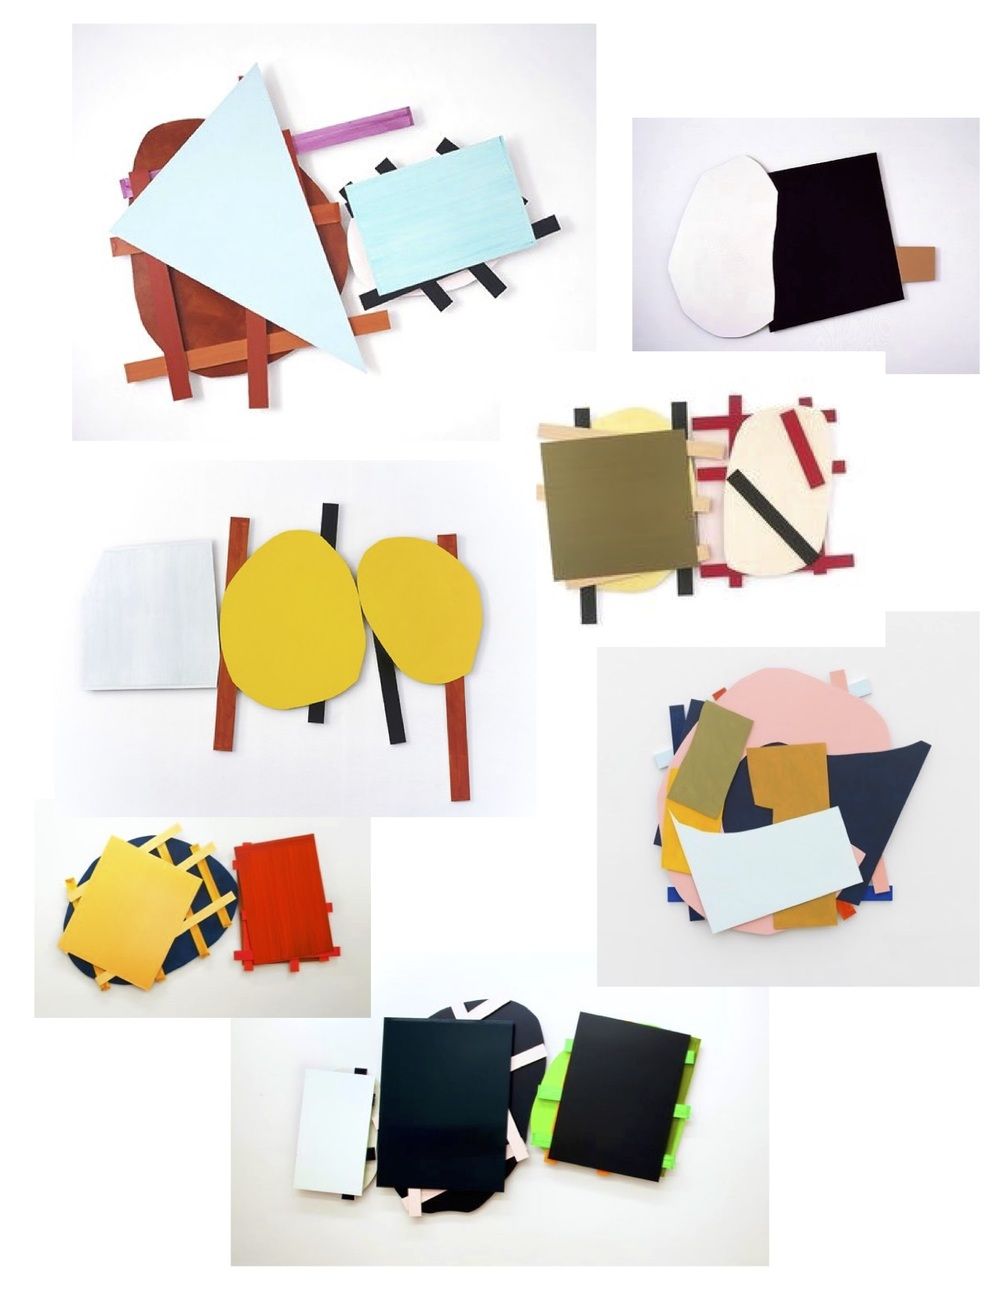 'Collages' of painted wood or metal in abstract geometric shapes, layered together creating inspiring color combinations and patterns....